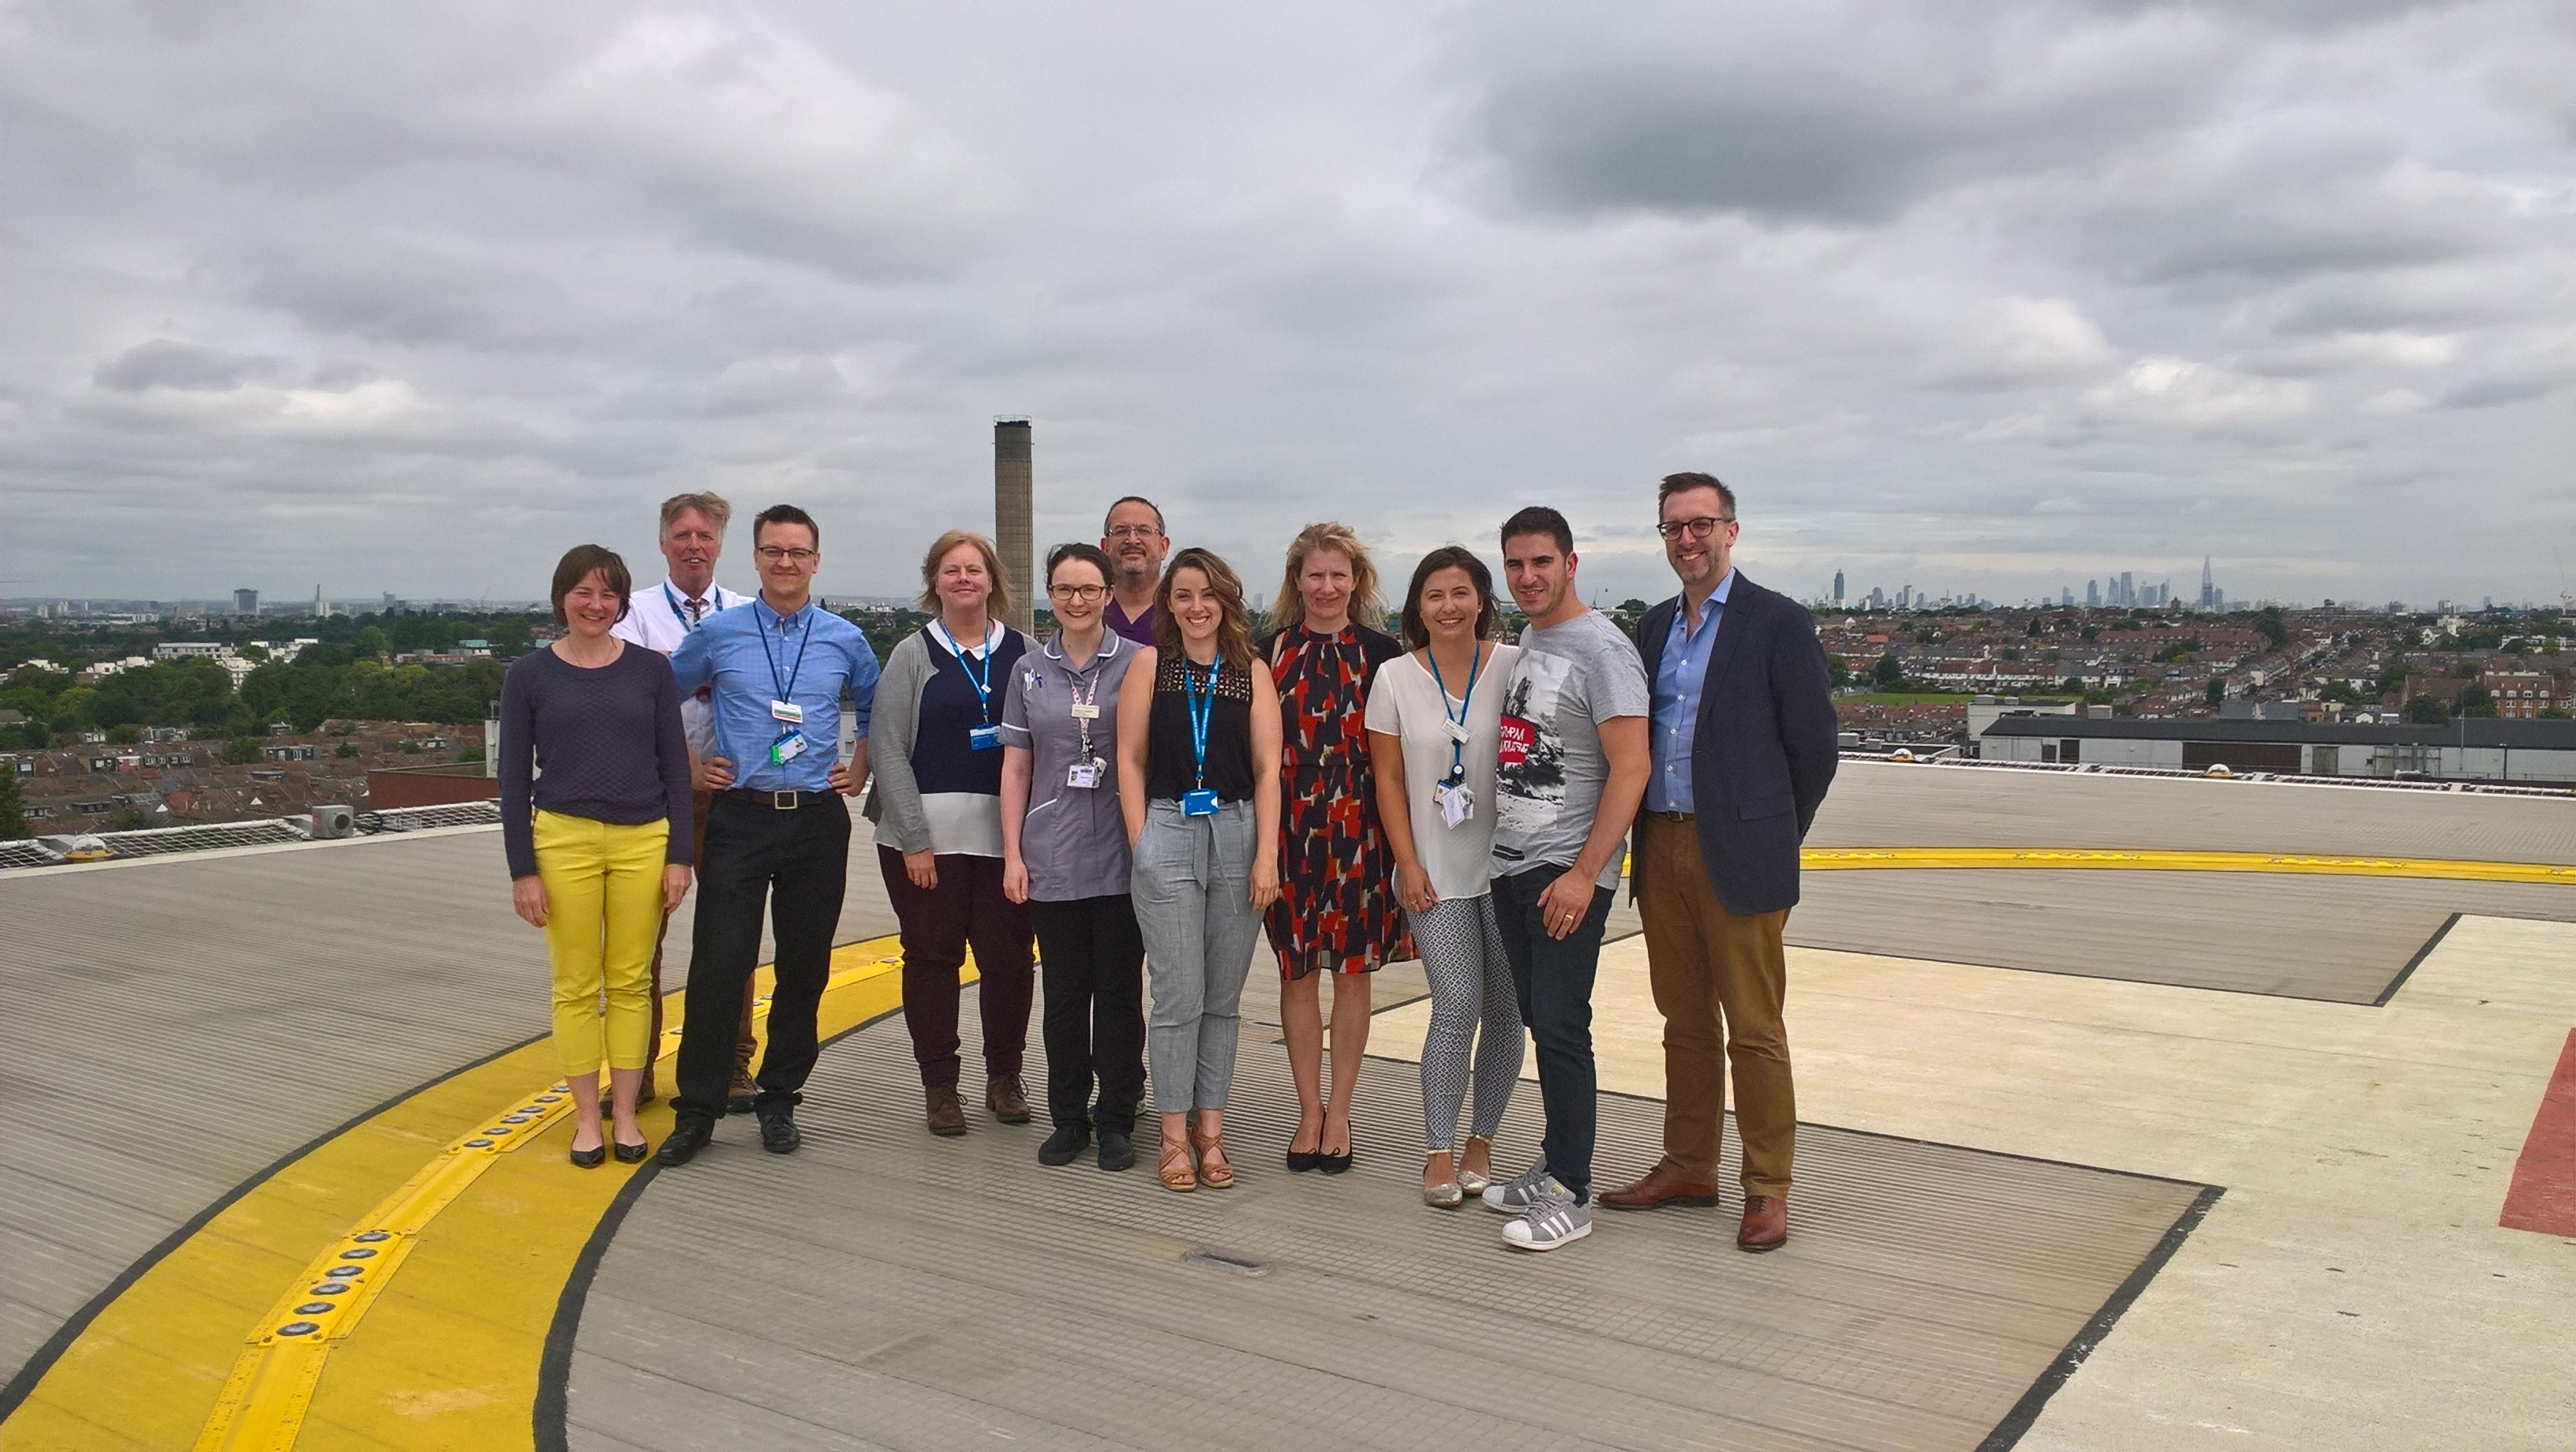 Cryostat 2 trial management and St George`s research teams